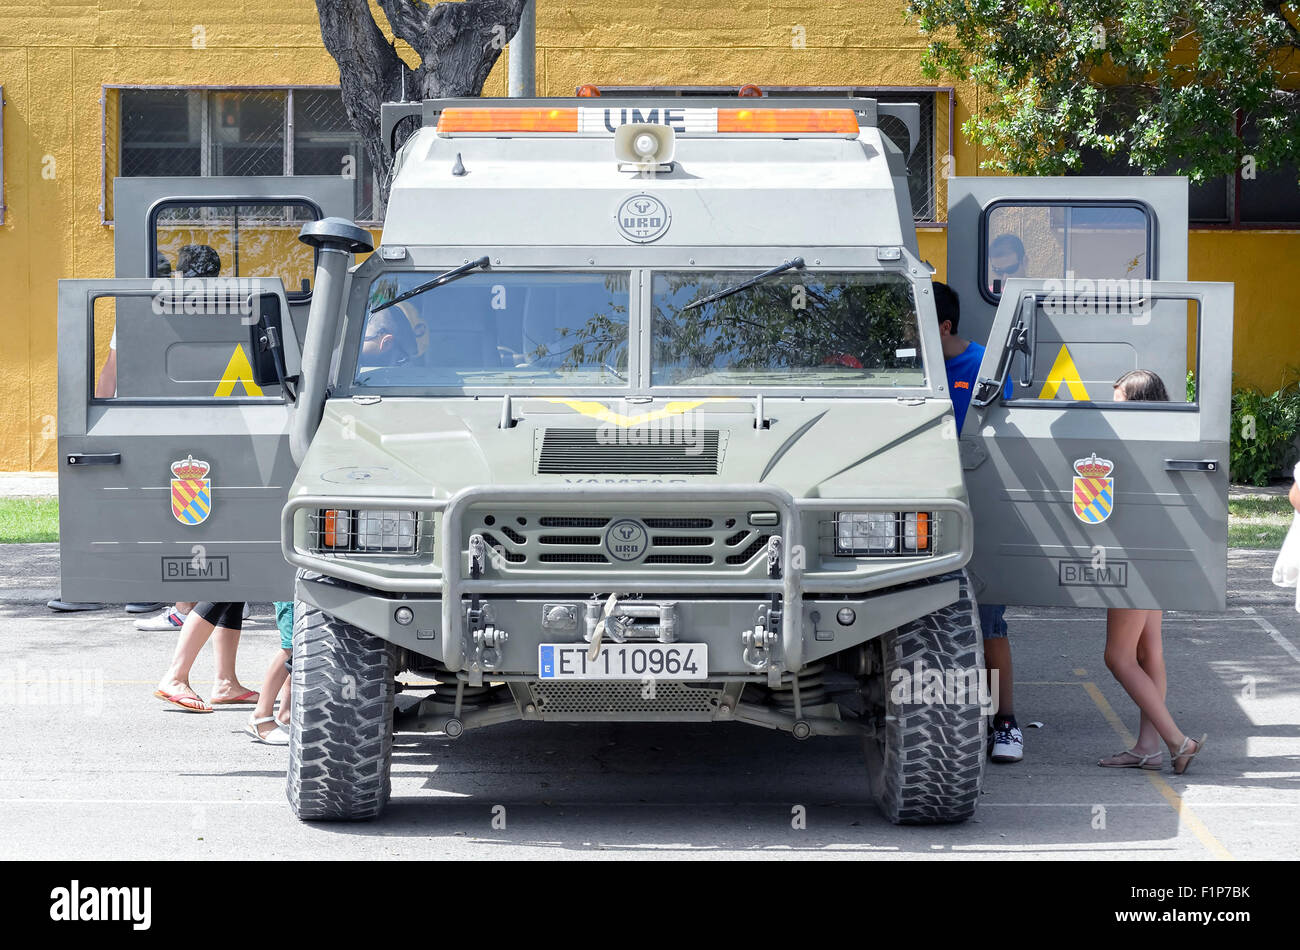 URO VAMTAC, -High Mobility Tactical Vehicle- of spanish army, during a show, in Alcala de Henares. - Stock Image